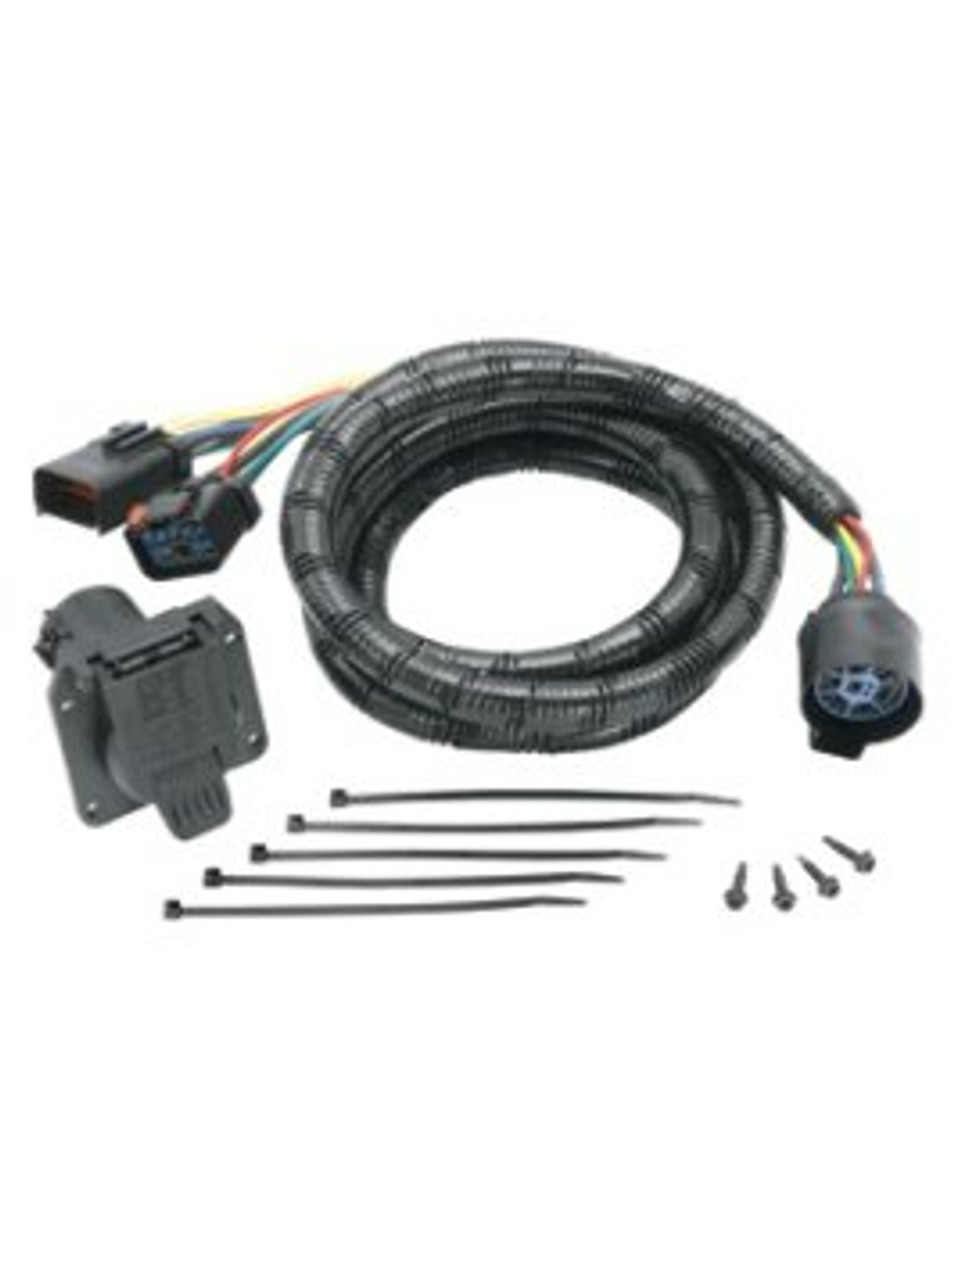 20111 --- Tow Ready® 5th Wheel Adapter Harness - 7-Way Flat Pin U.S. Car Connector Assembly 7'